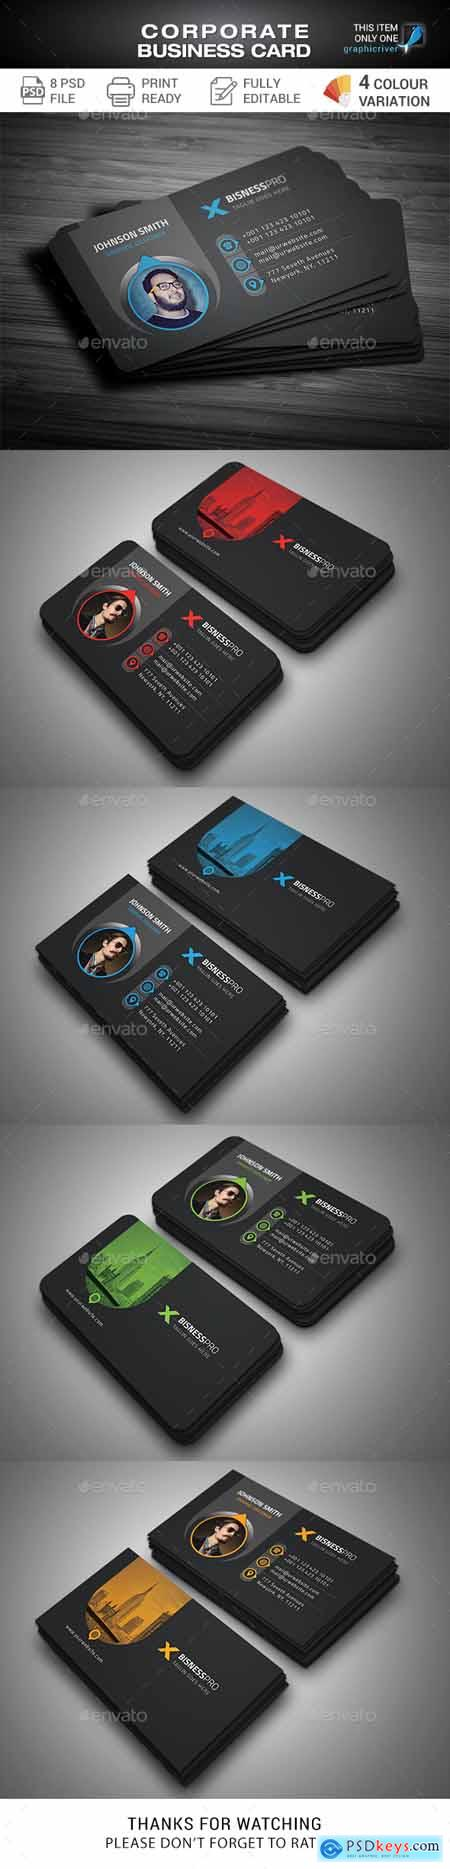 Business Cards 28044230